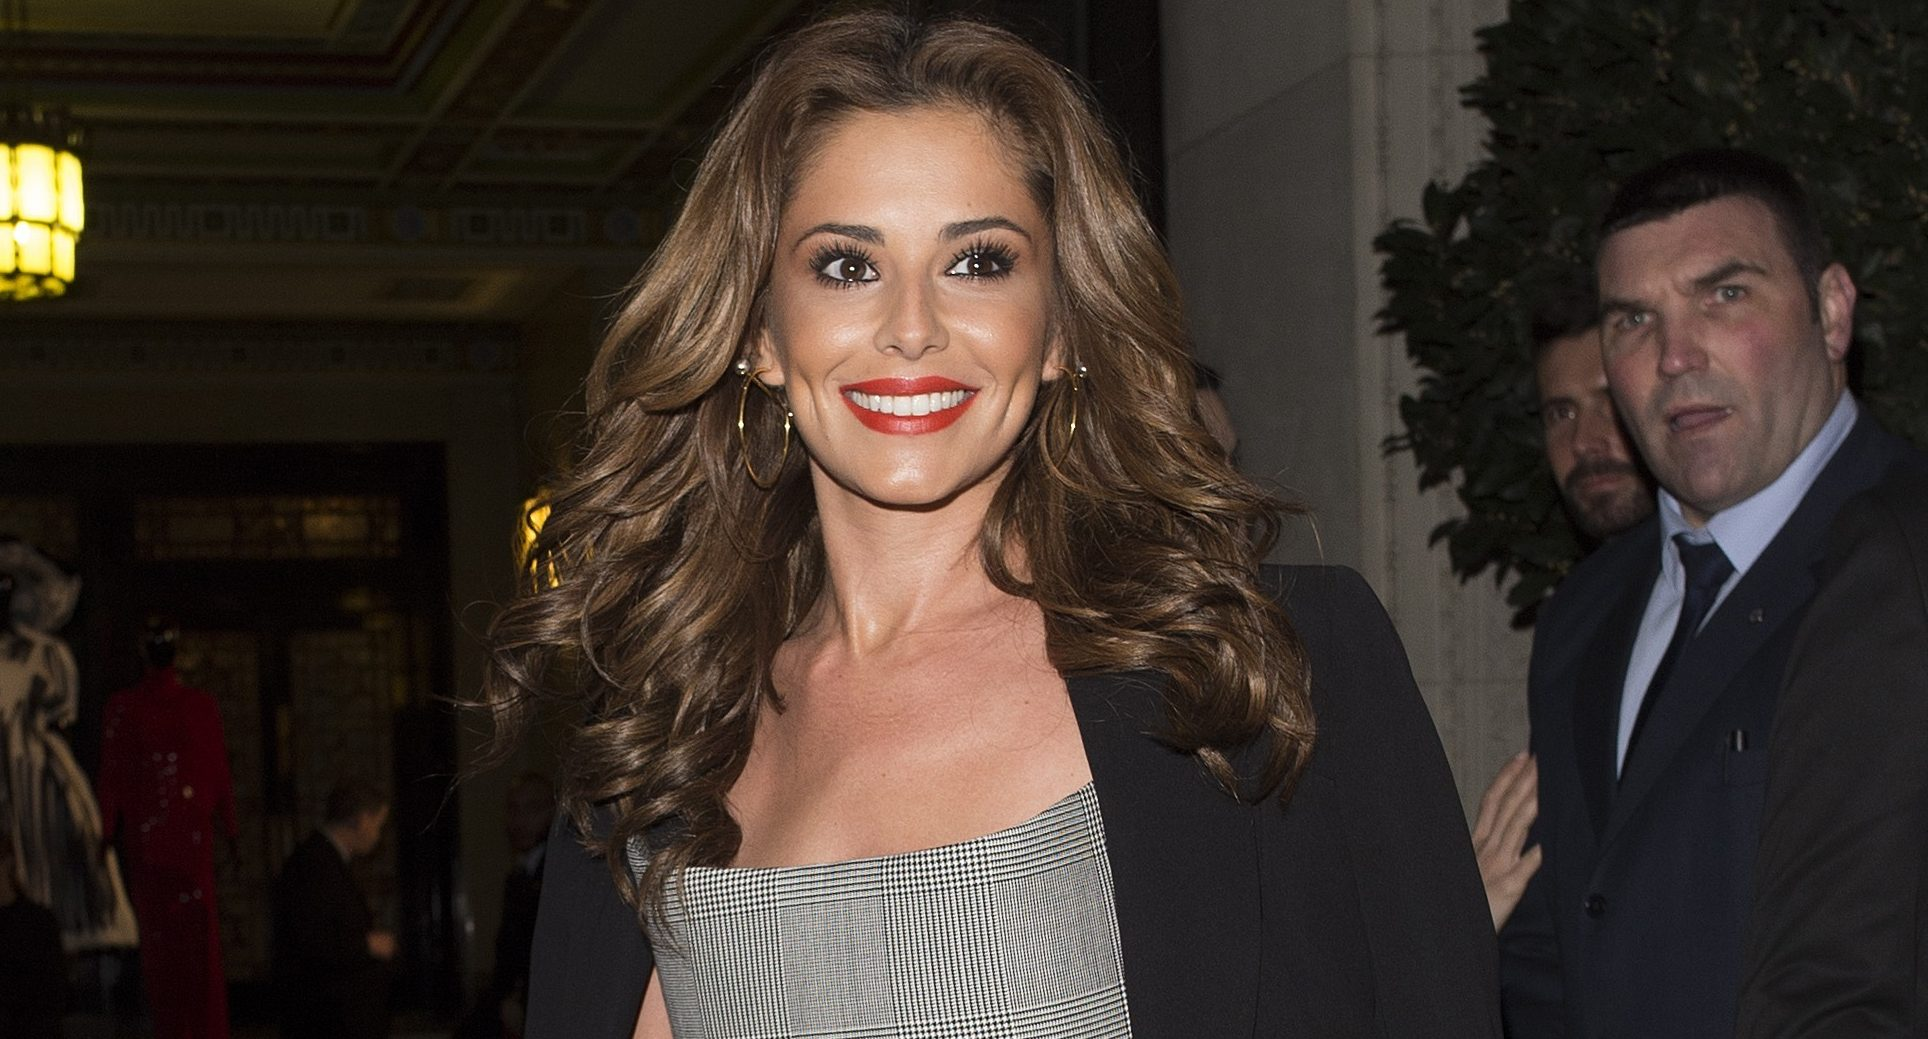 Cheryl gets a cheeky telling off from fans after latest Instagram